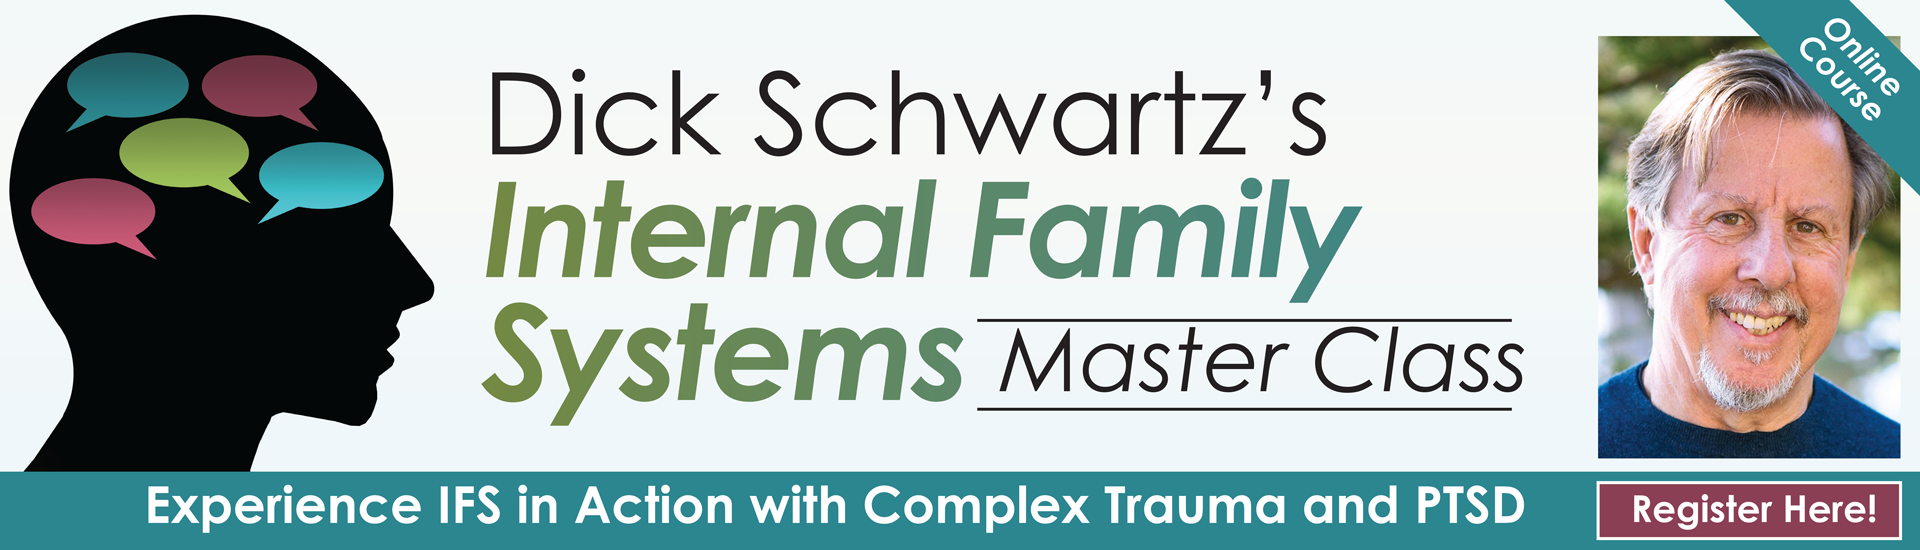 Dick Schwartz's Internal Family Systems Master Class: Experience IFS in Action with Complex Trauma and PTSD